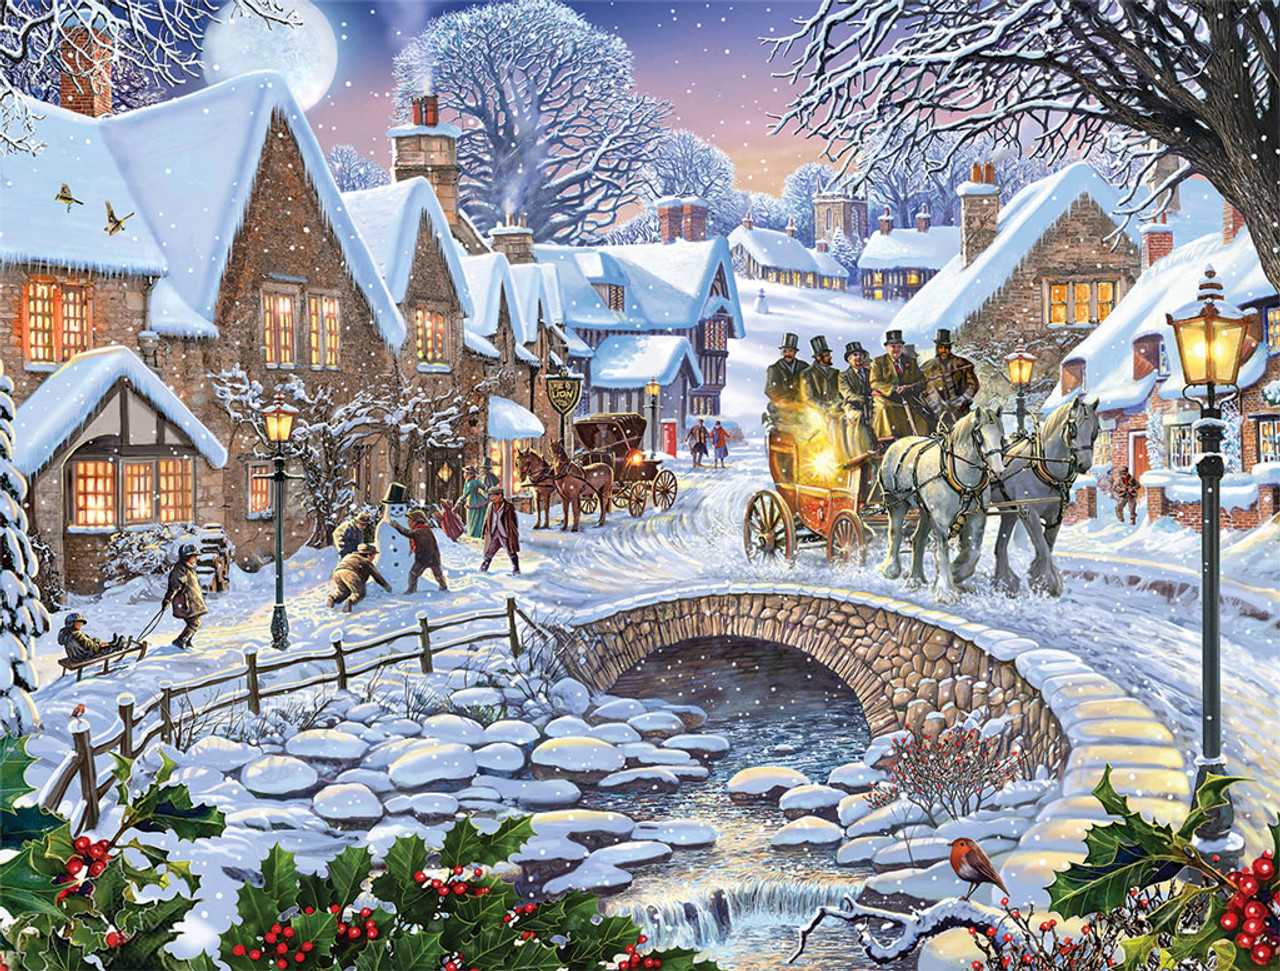 Winter Village 1000pc Jigsaw Puzzle By White Mountain